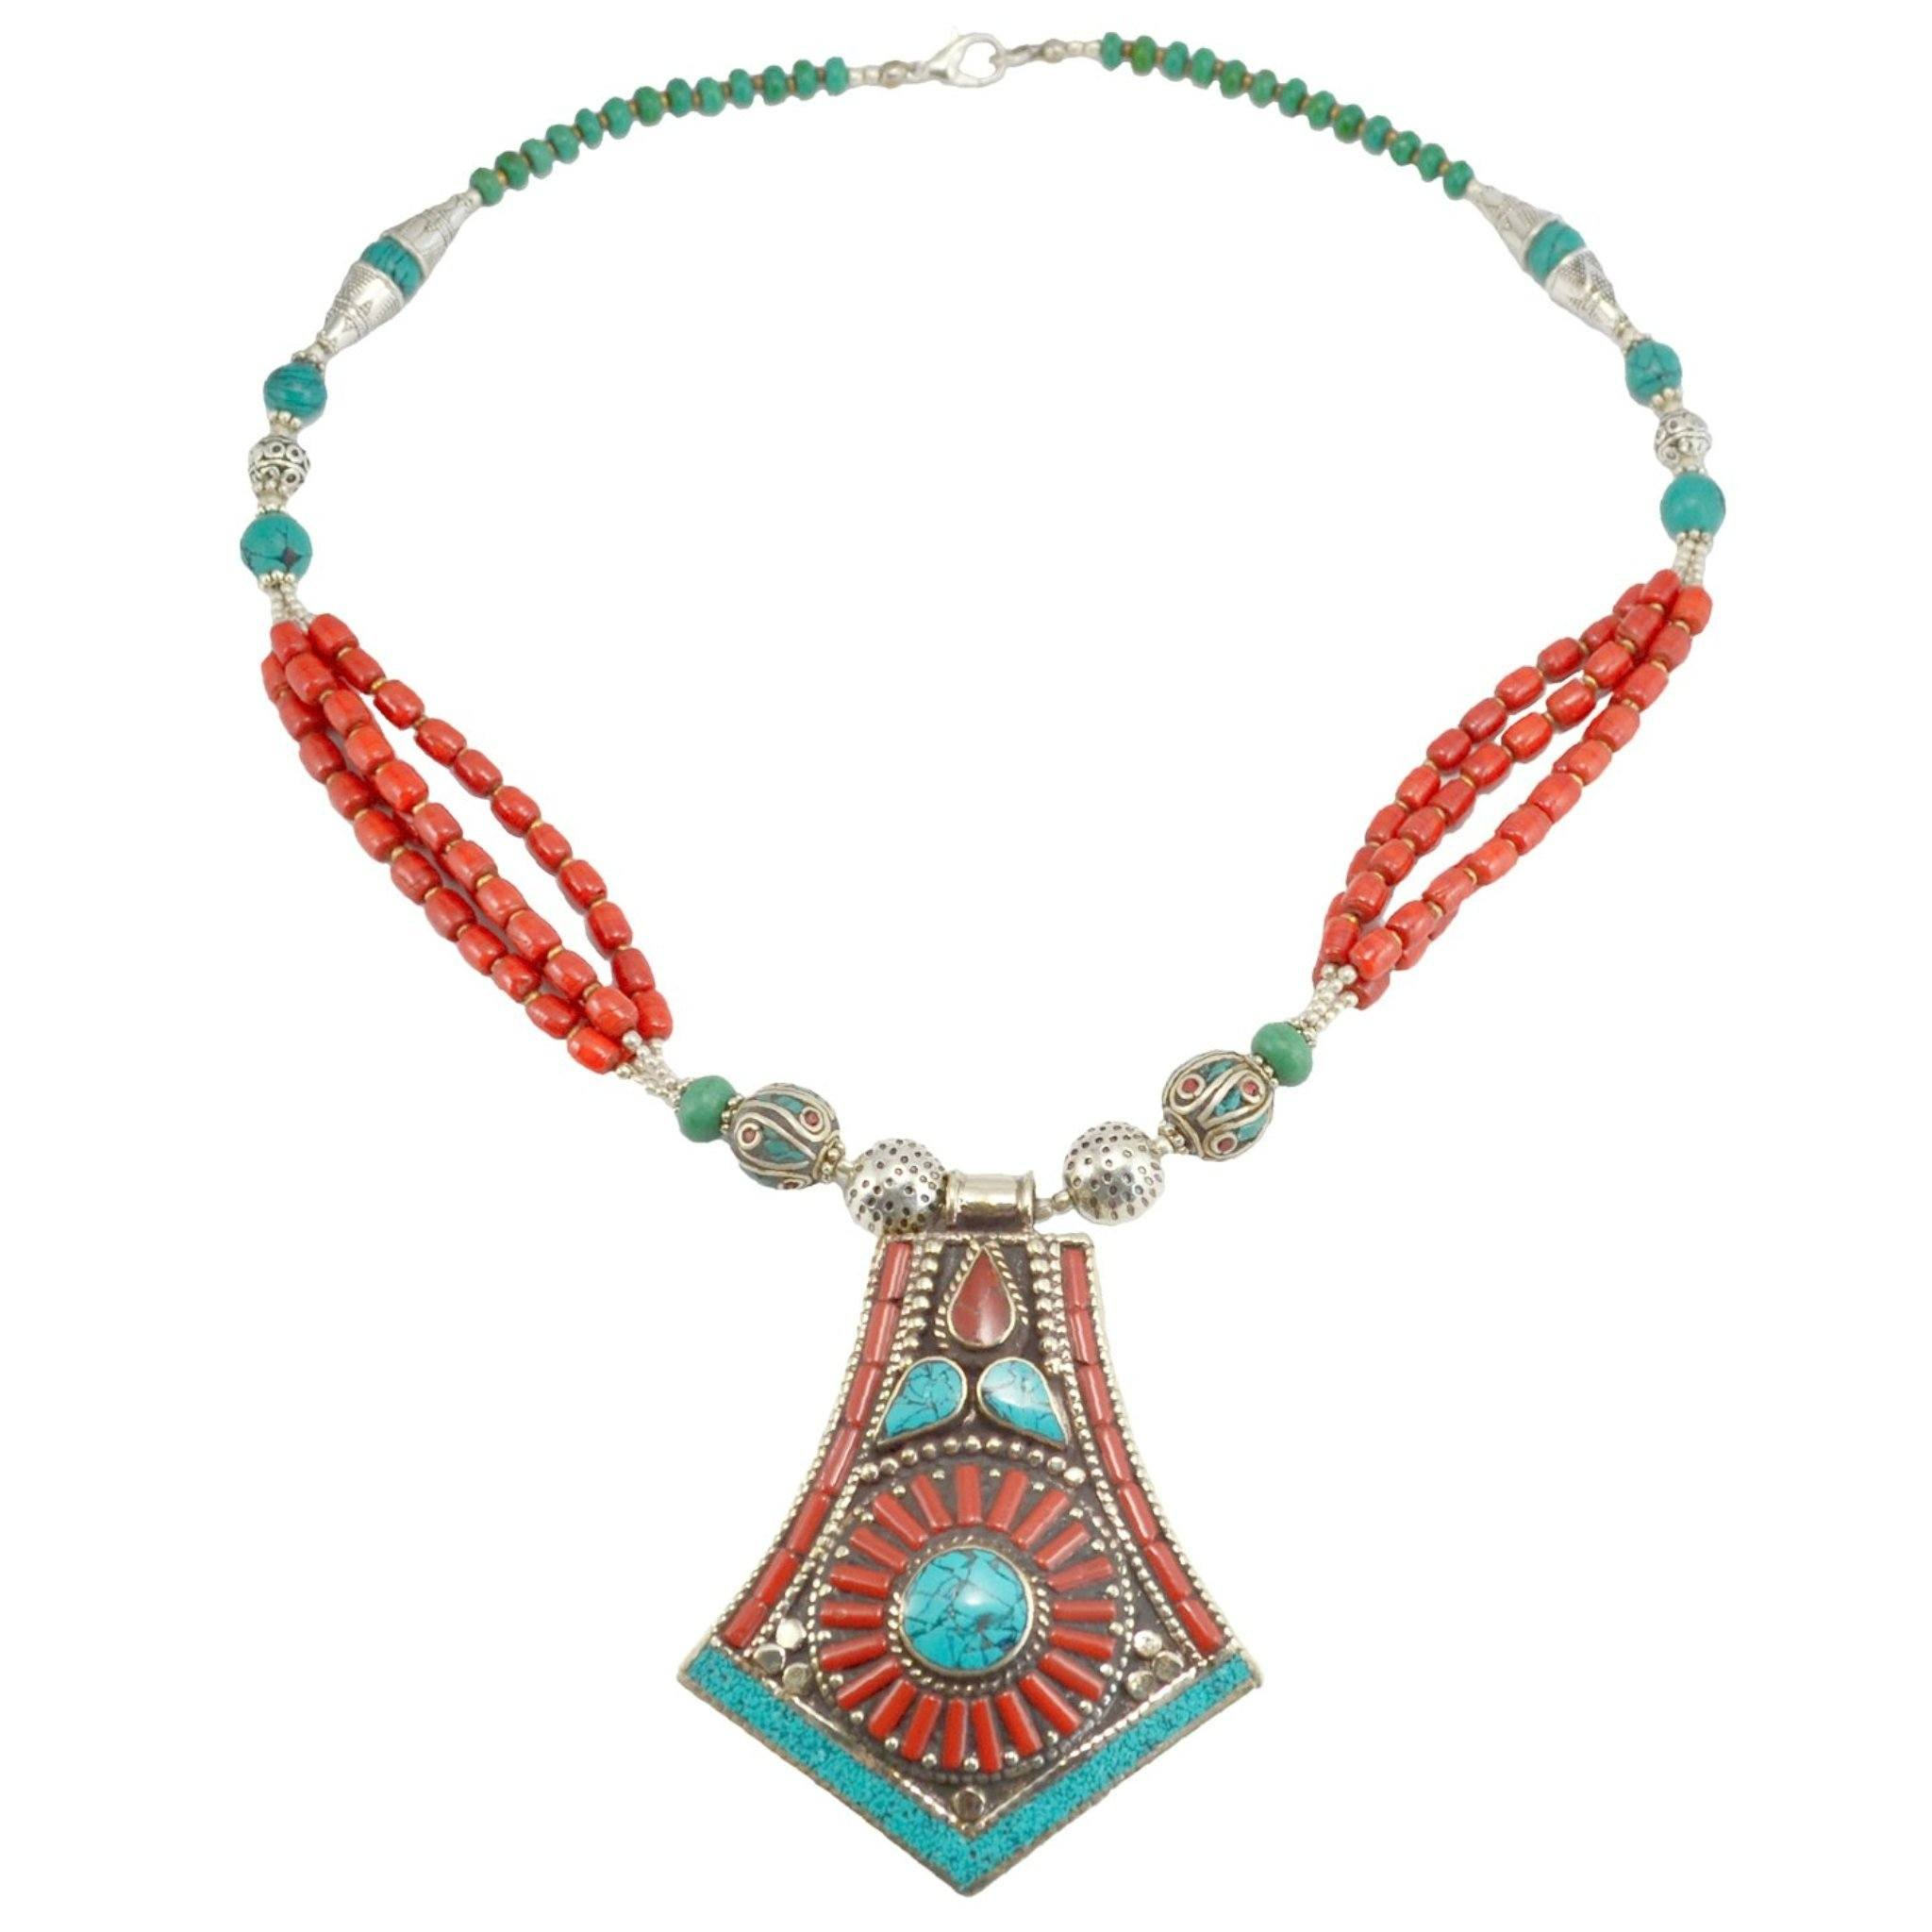 Makalu Necklace Tibet Craft Corner